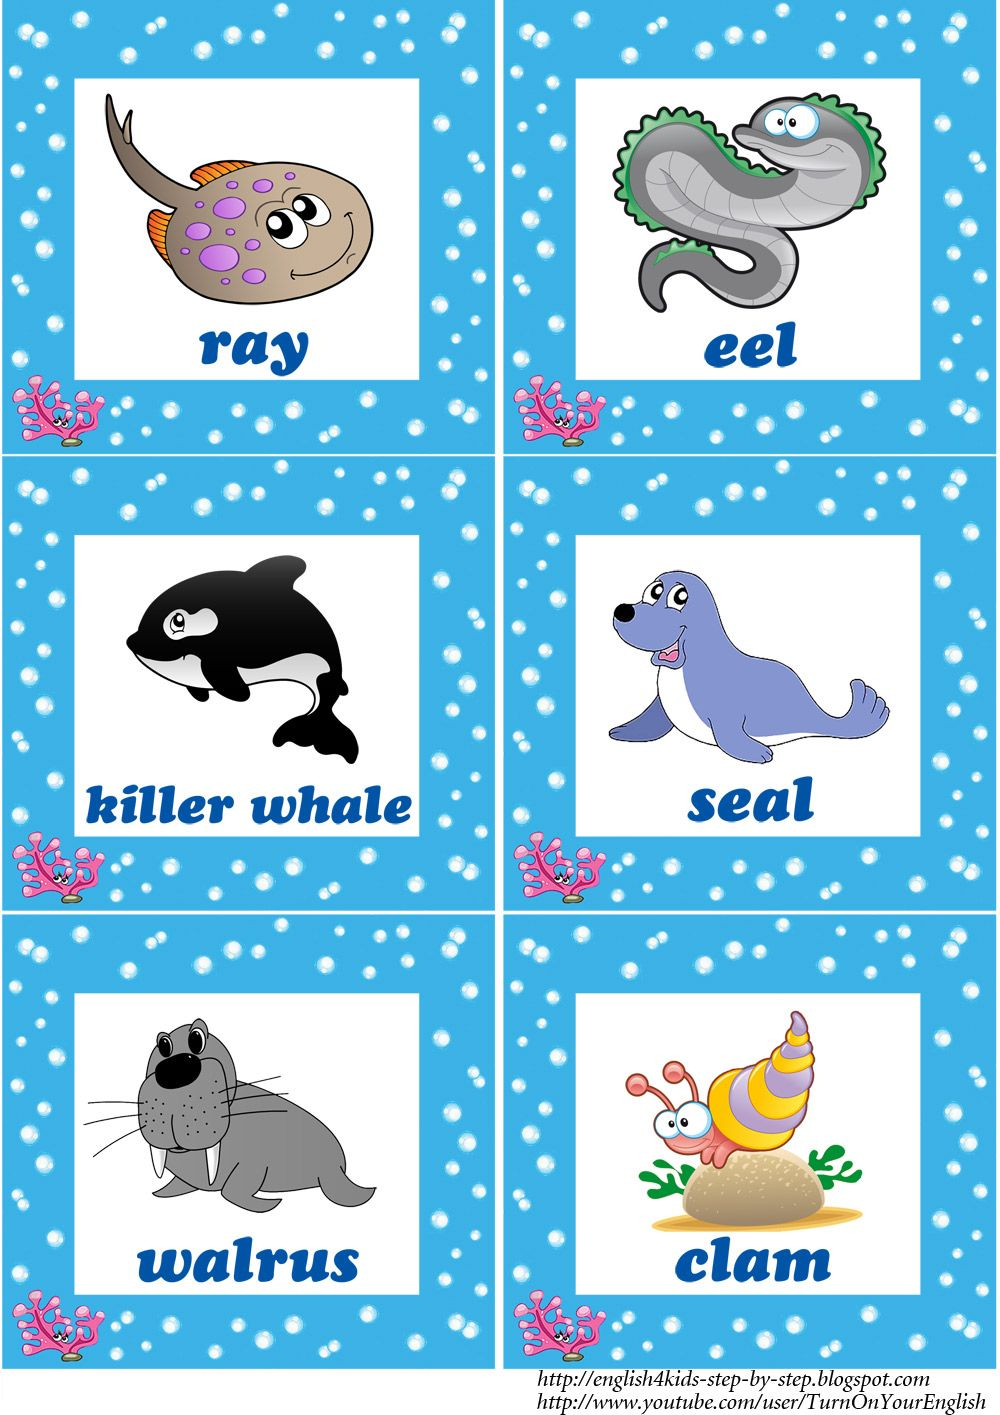 Deep In The Ocean Deep In The Sea Song For Kids Kids Songs Animals For Kids Animal Flashcards [ 1415 x 1000 Pixel ]